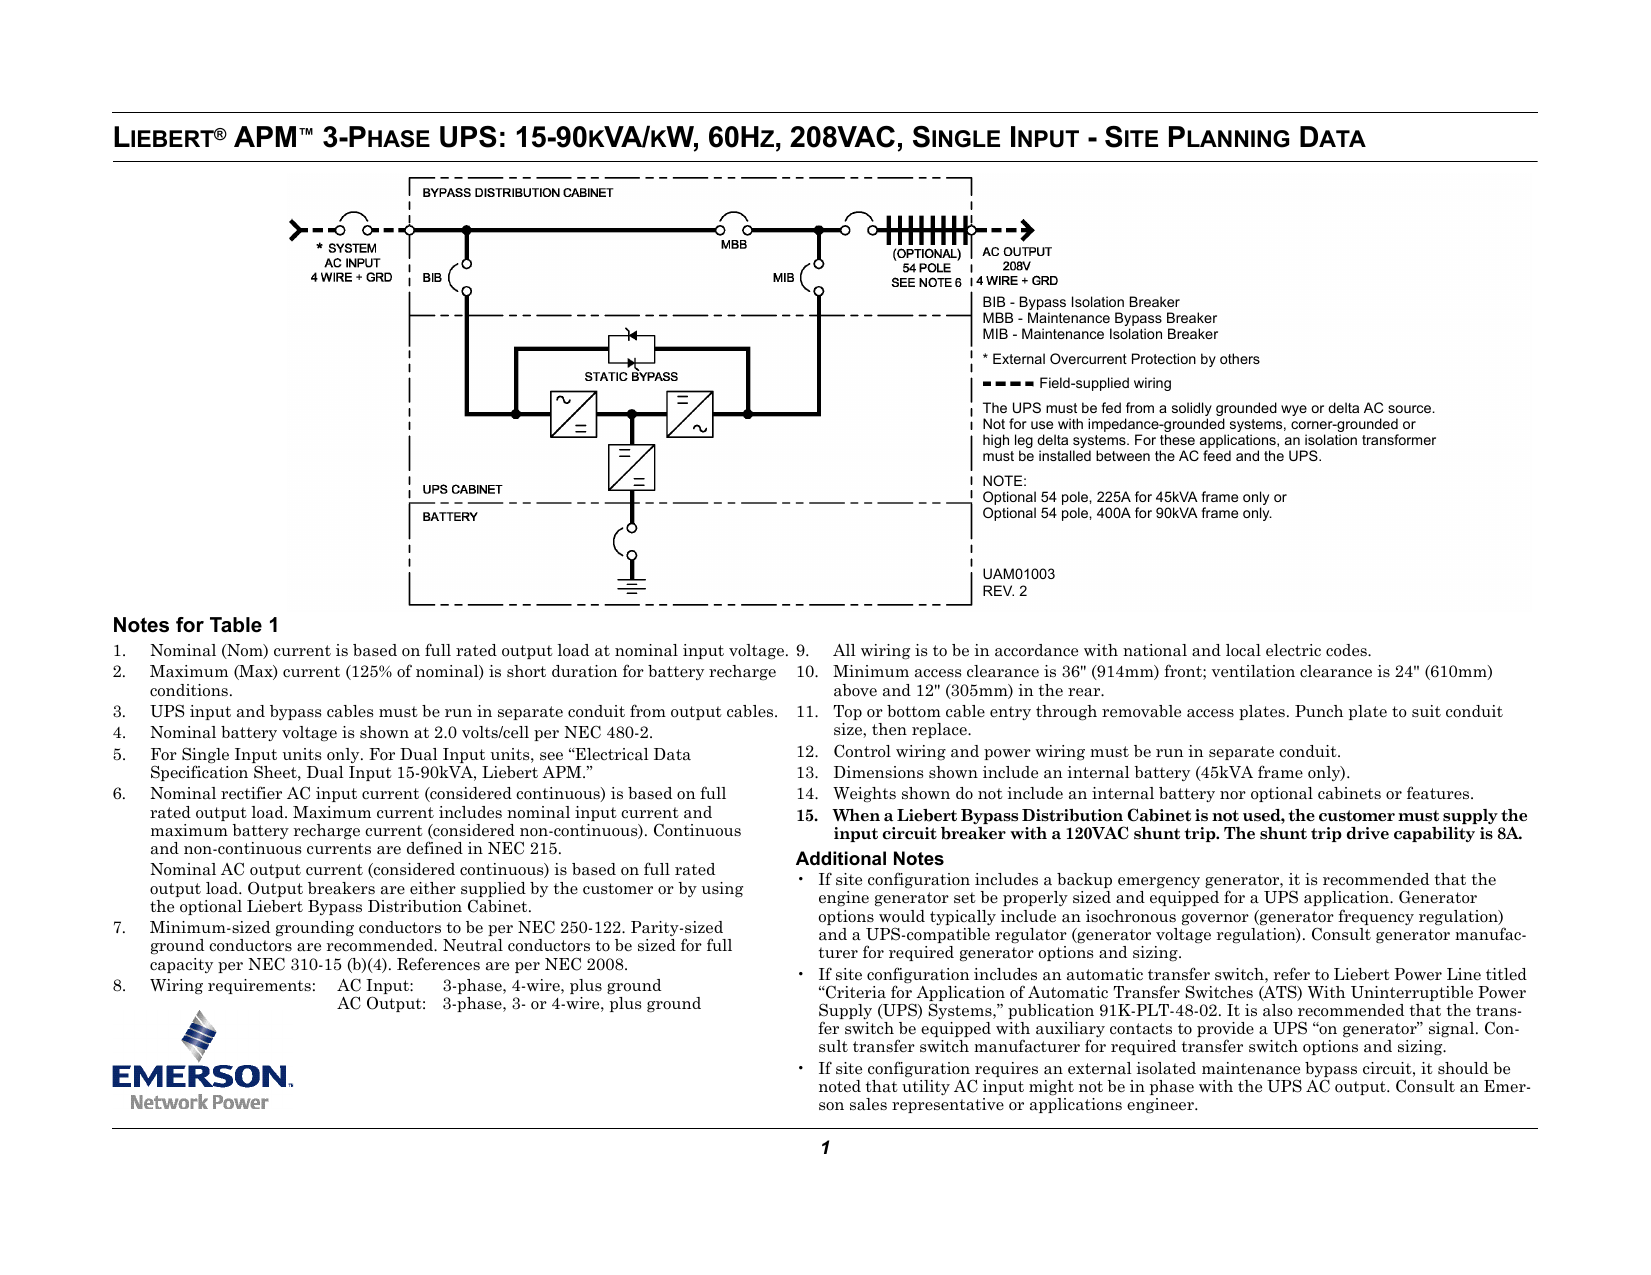 Liebert Apm 3 Phase Ups 15 90kva Kw 60hz 208vac Bypass Switch Wiring Diagram